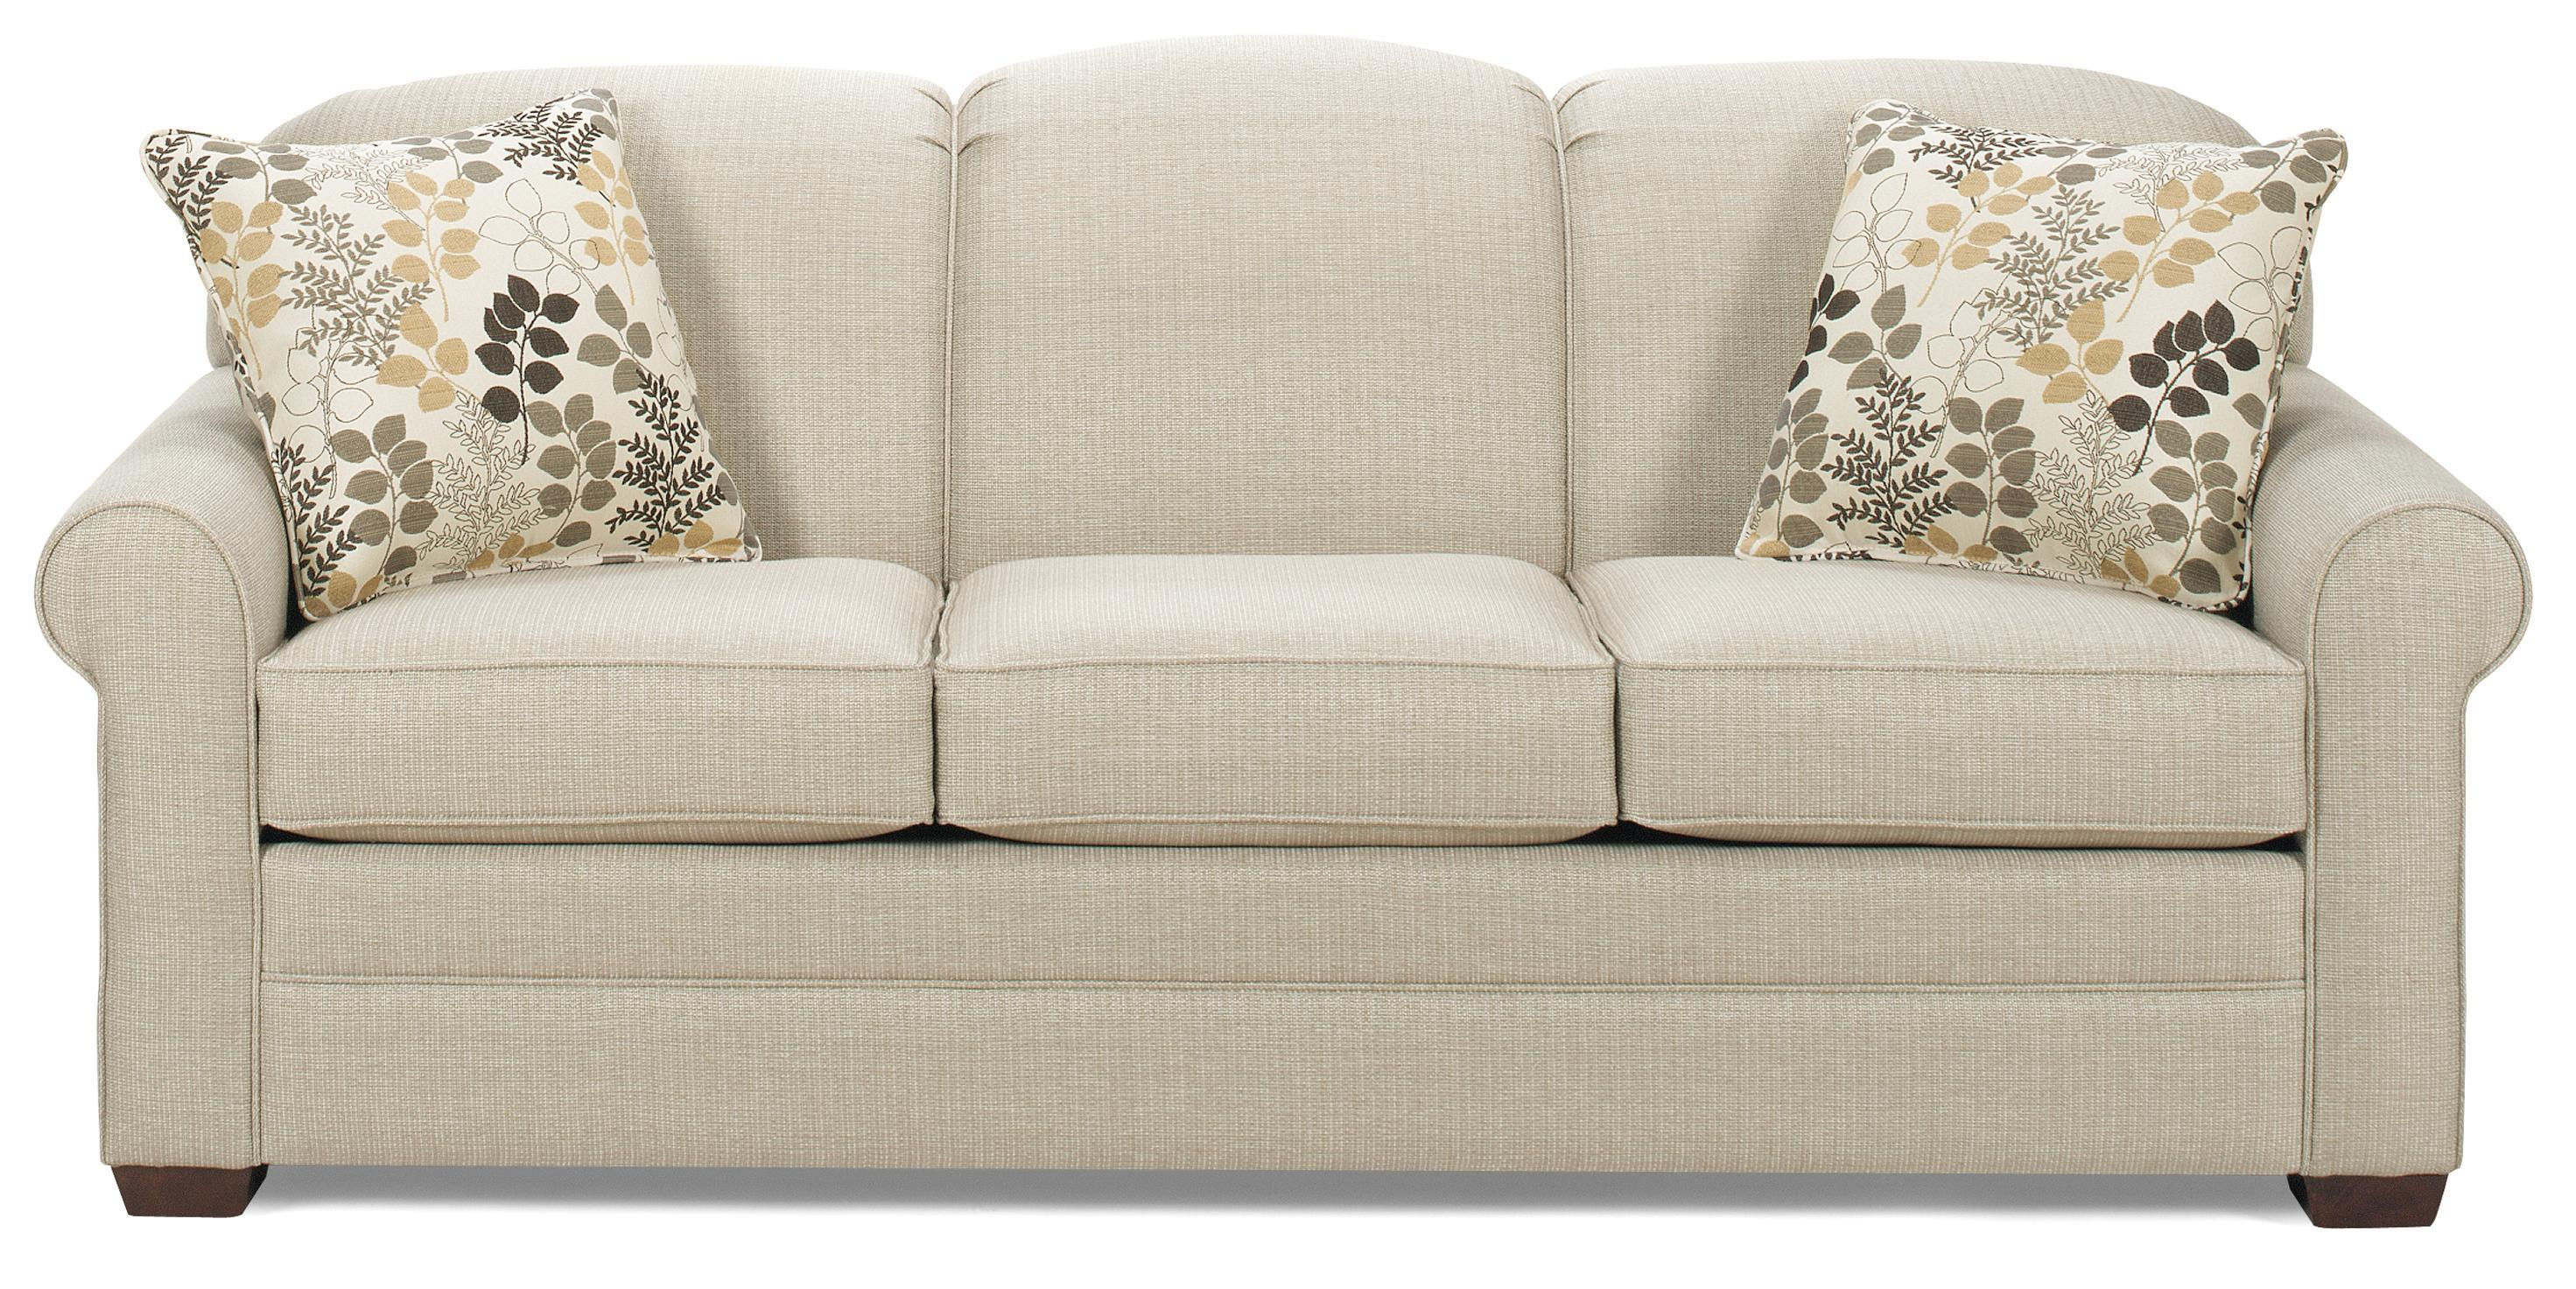 7185 Sofa by Craftmaster at Jacksonville Furniture Mart